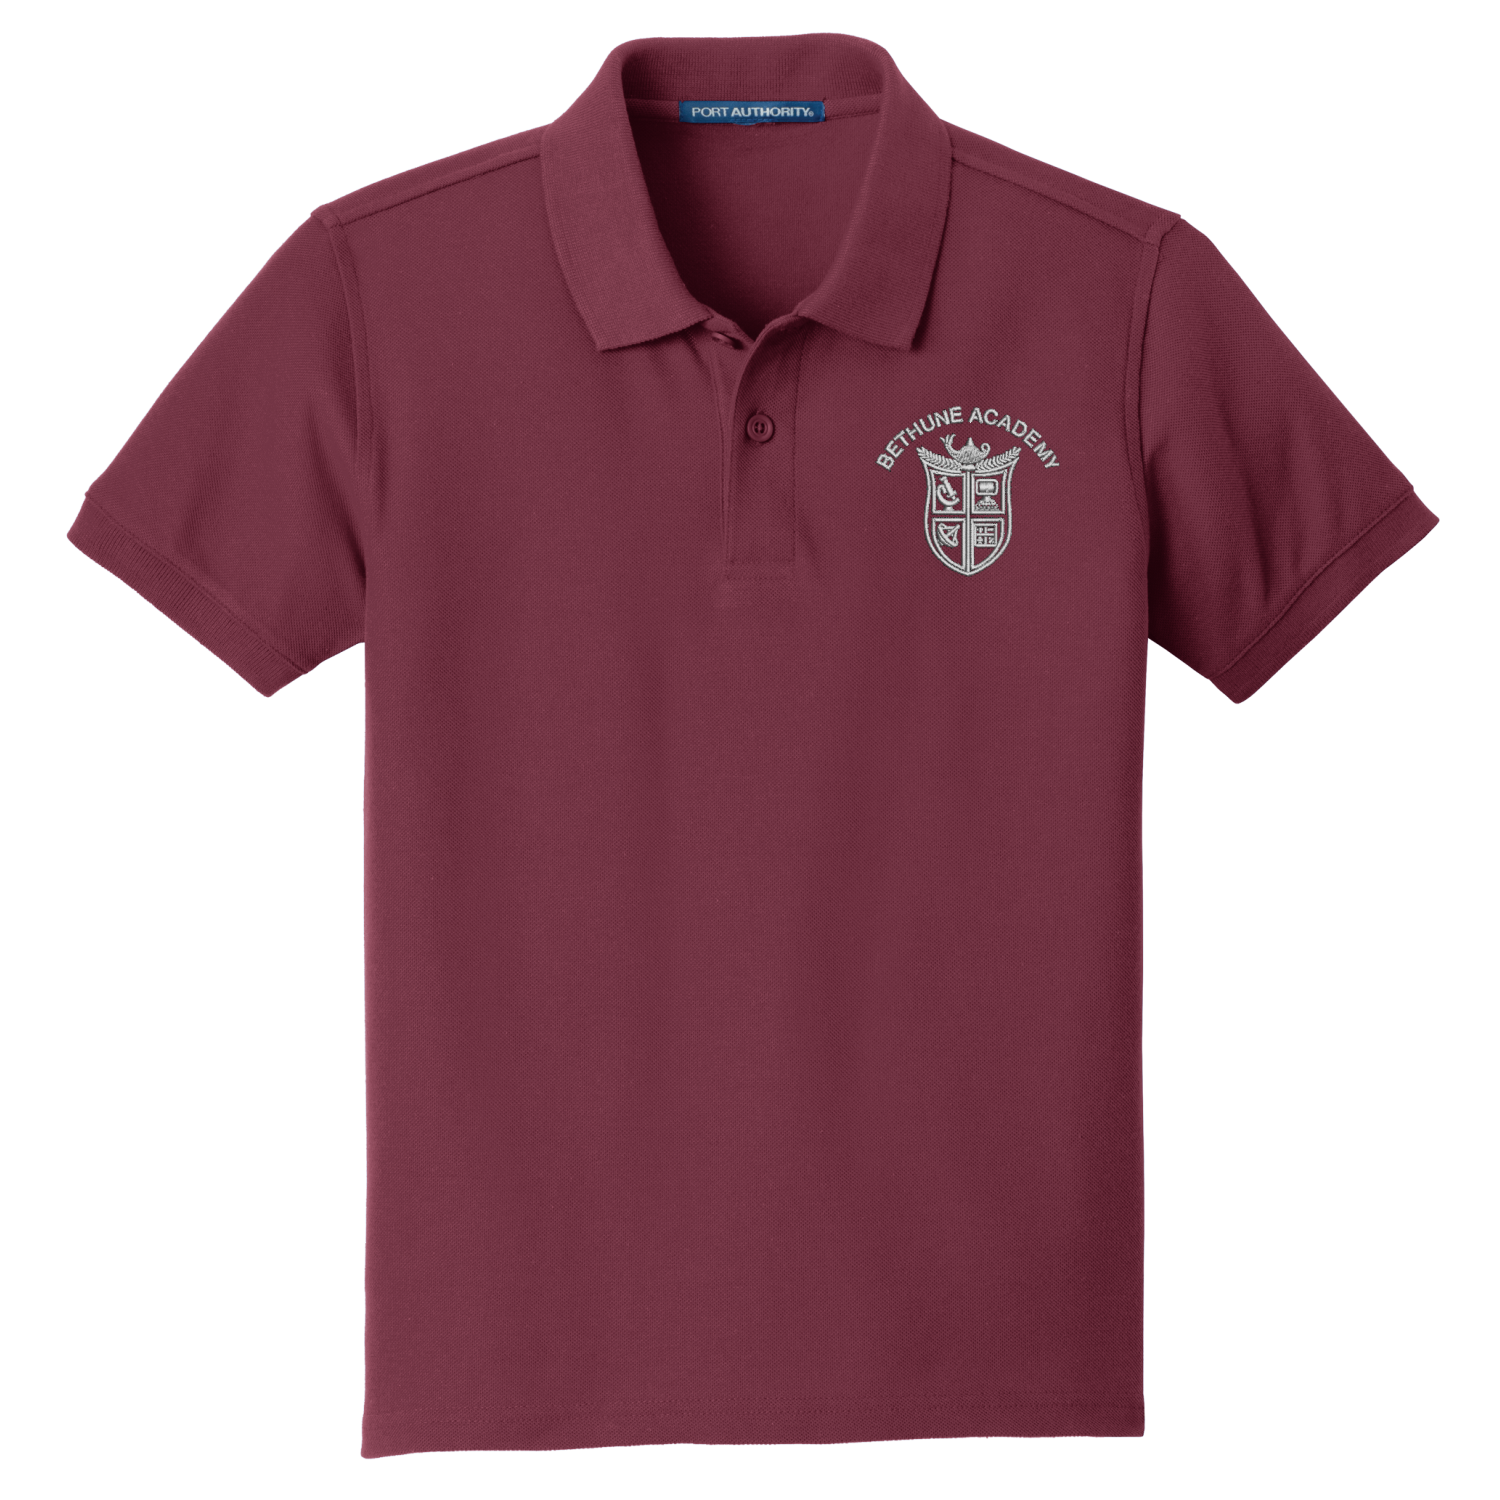 Bethune Academy Port Authority® ADULT SIZE Core Classic Pique Polo - Burgundy